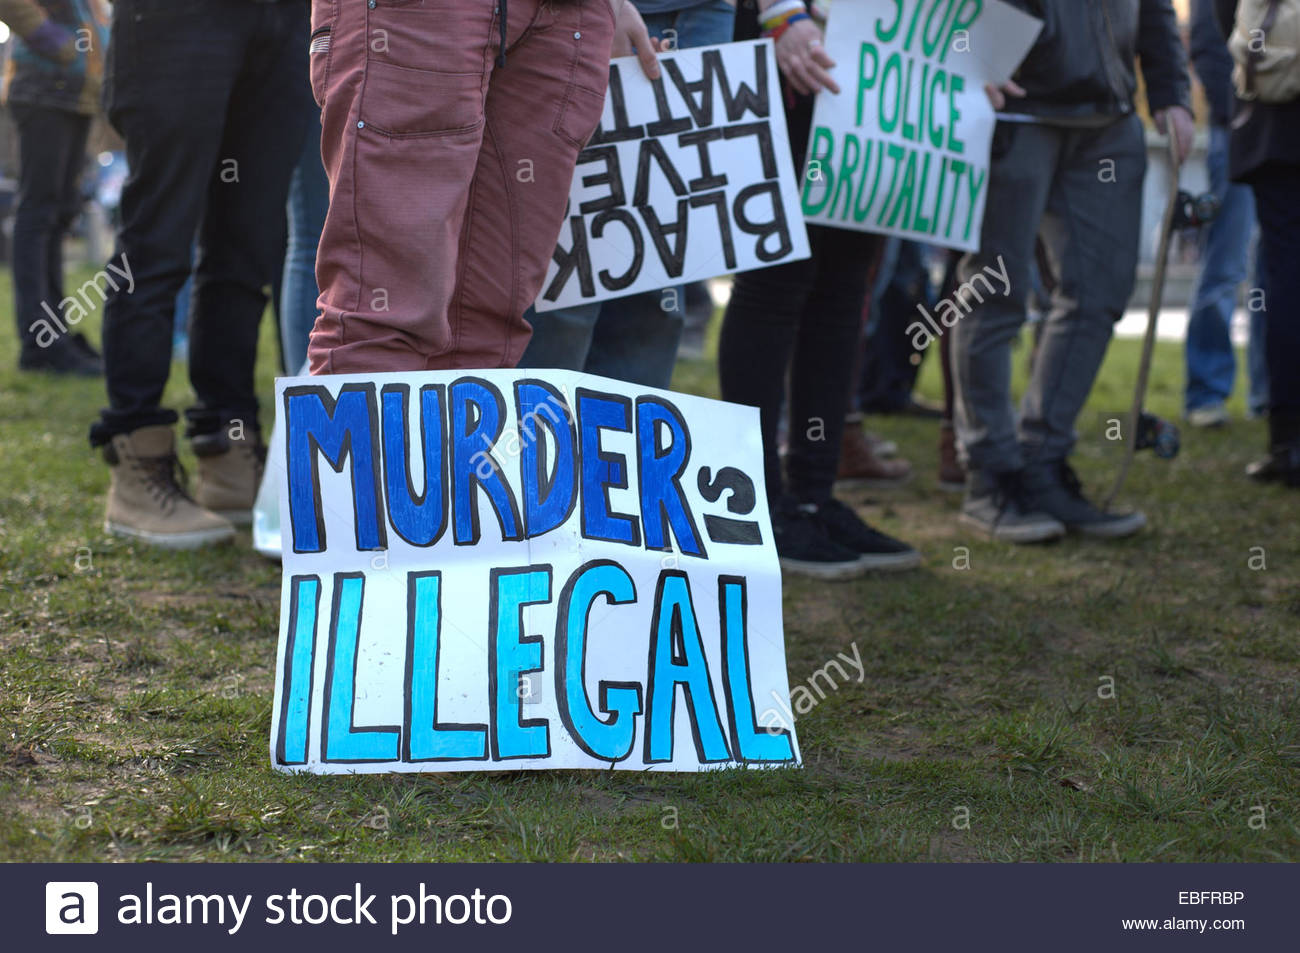 A placard showing that 'Murder is illegal'. People of different ethnicities joined together and held a rally - Stock Image